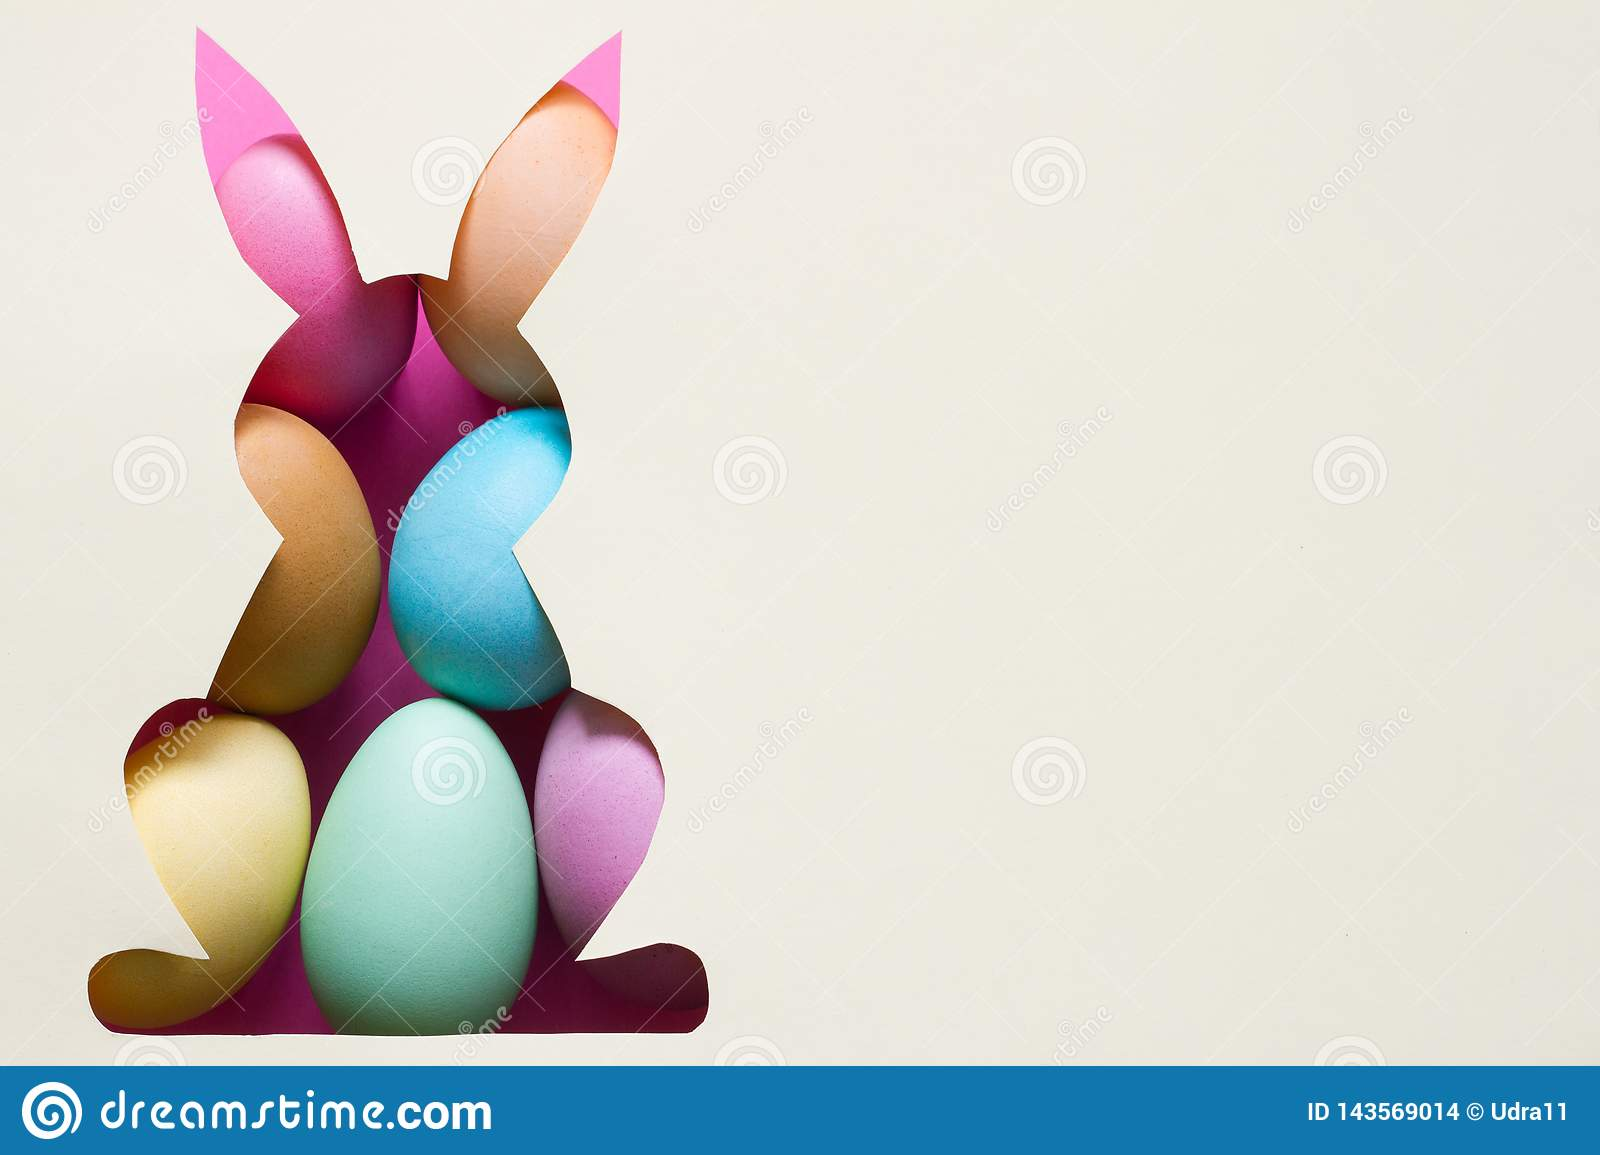 Silhouette of easter rabbit on paper with green grass and colorful egg abstract background